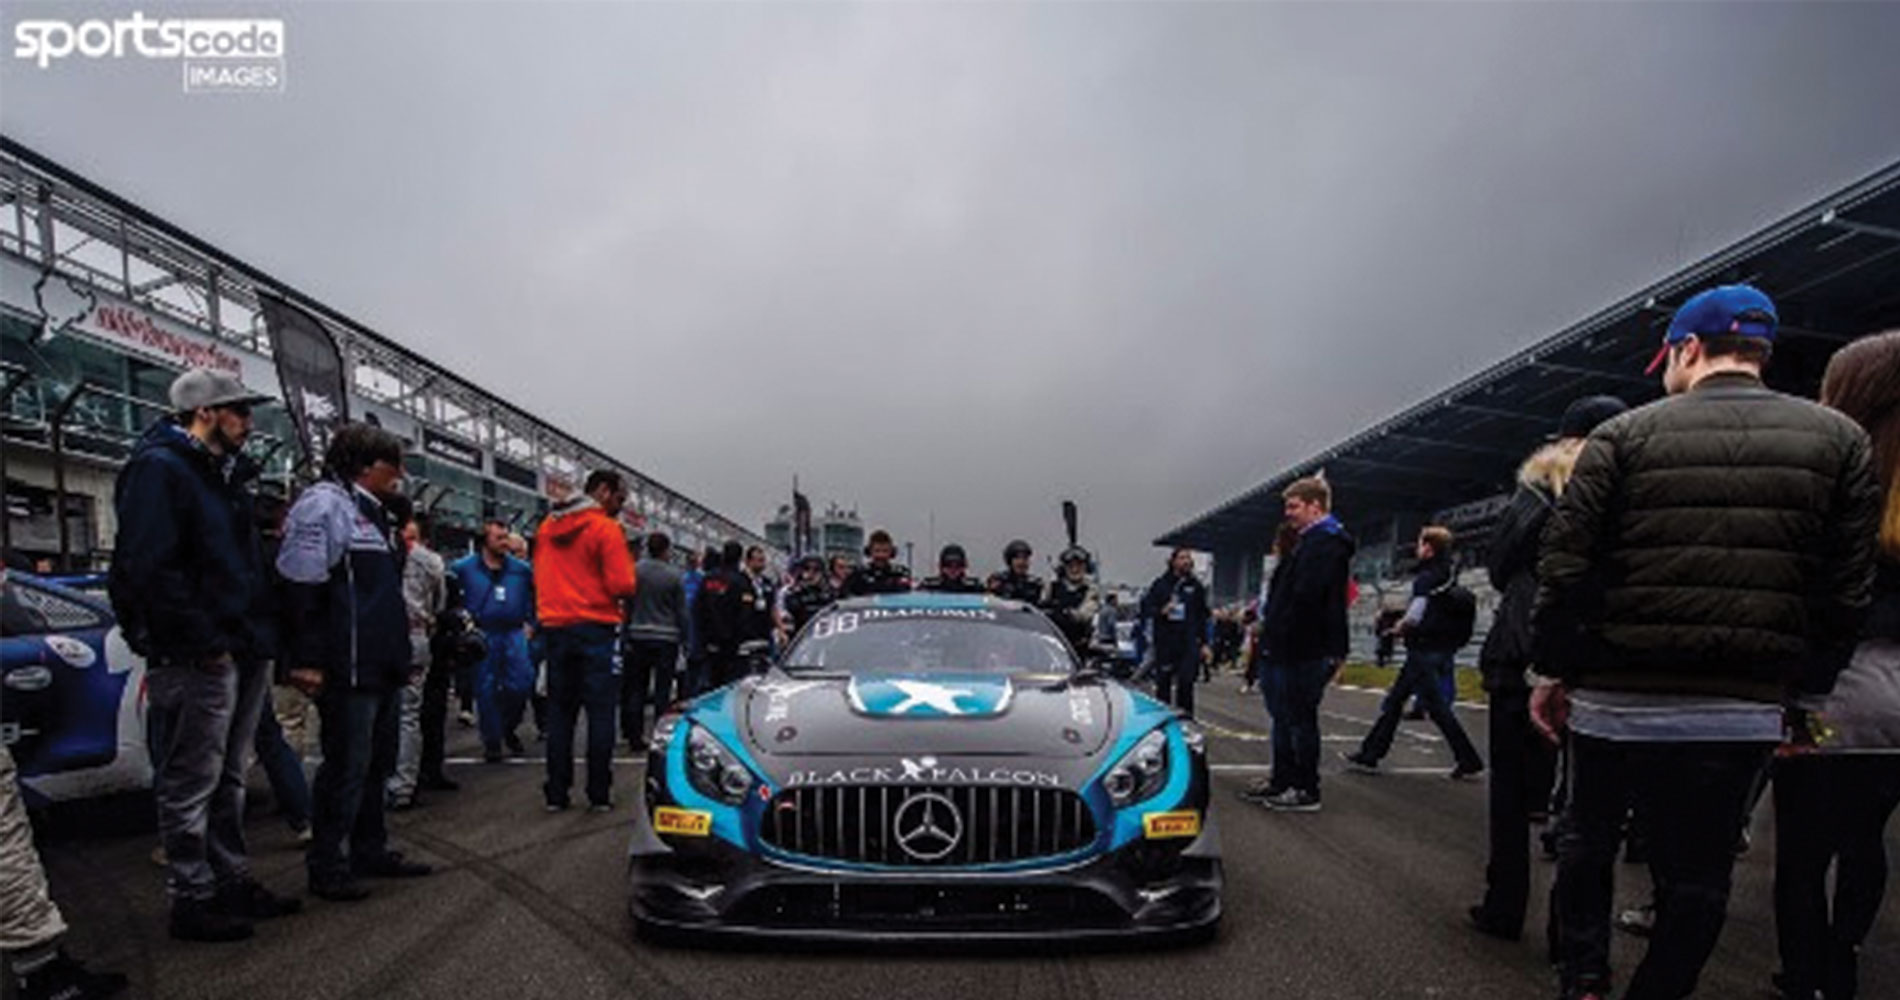 puncture-thwarts-christodoulou-in-blancpain-endurance-finale-motorsportdays-track-days-1